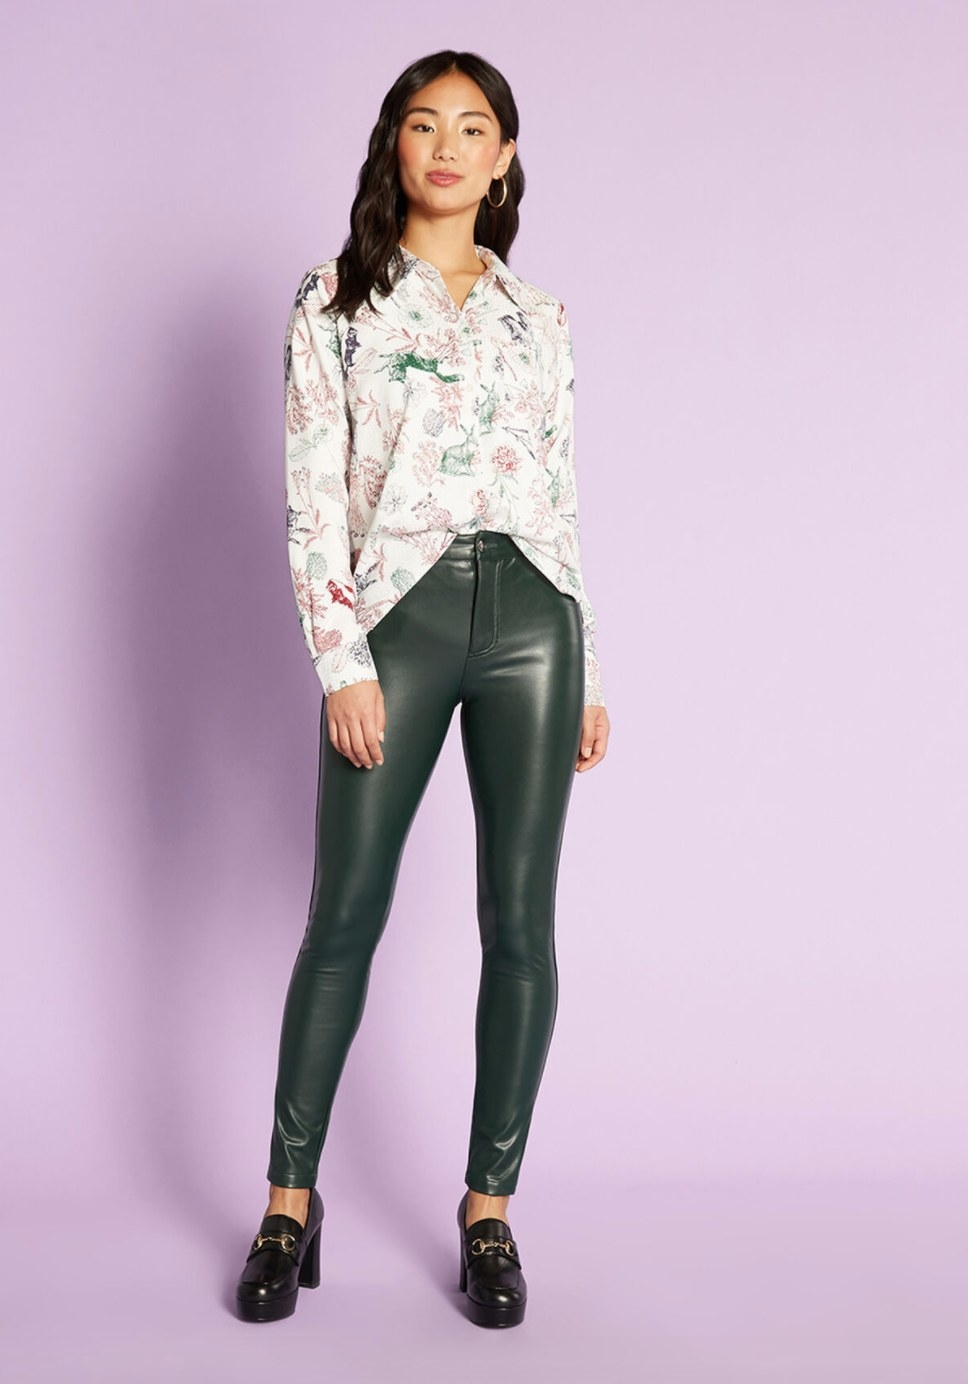 The gleam skinny pant in green